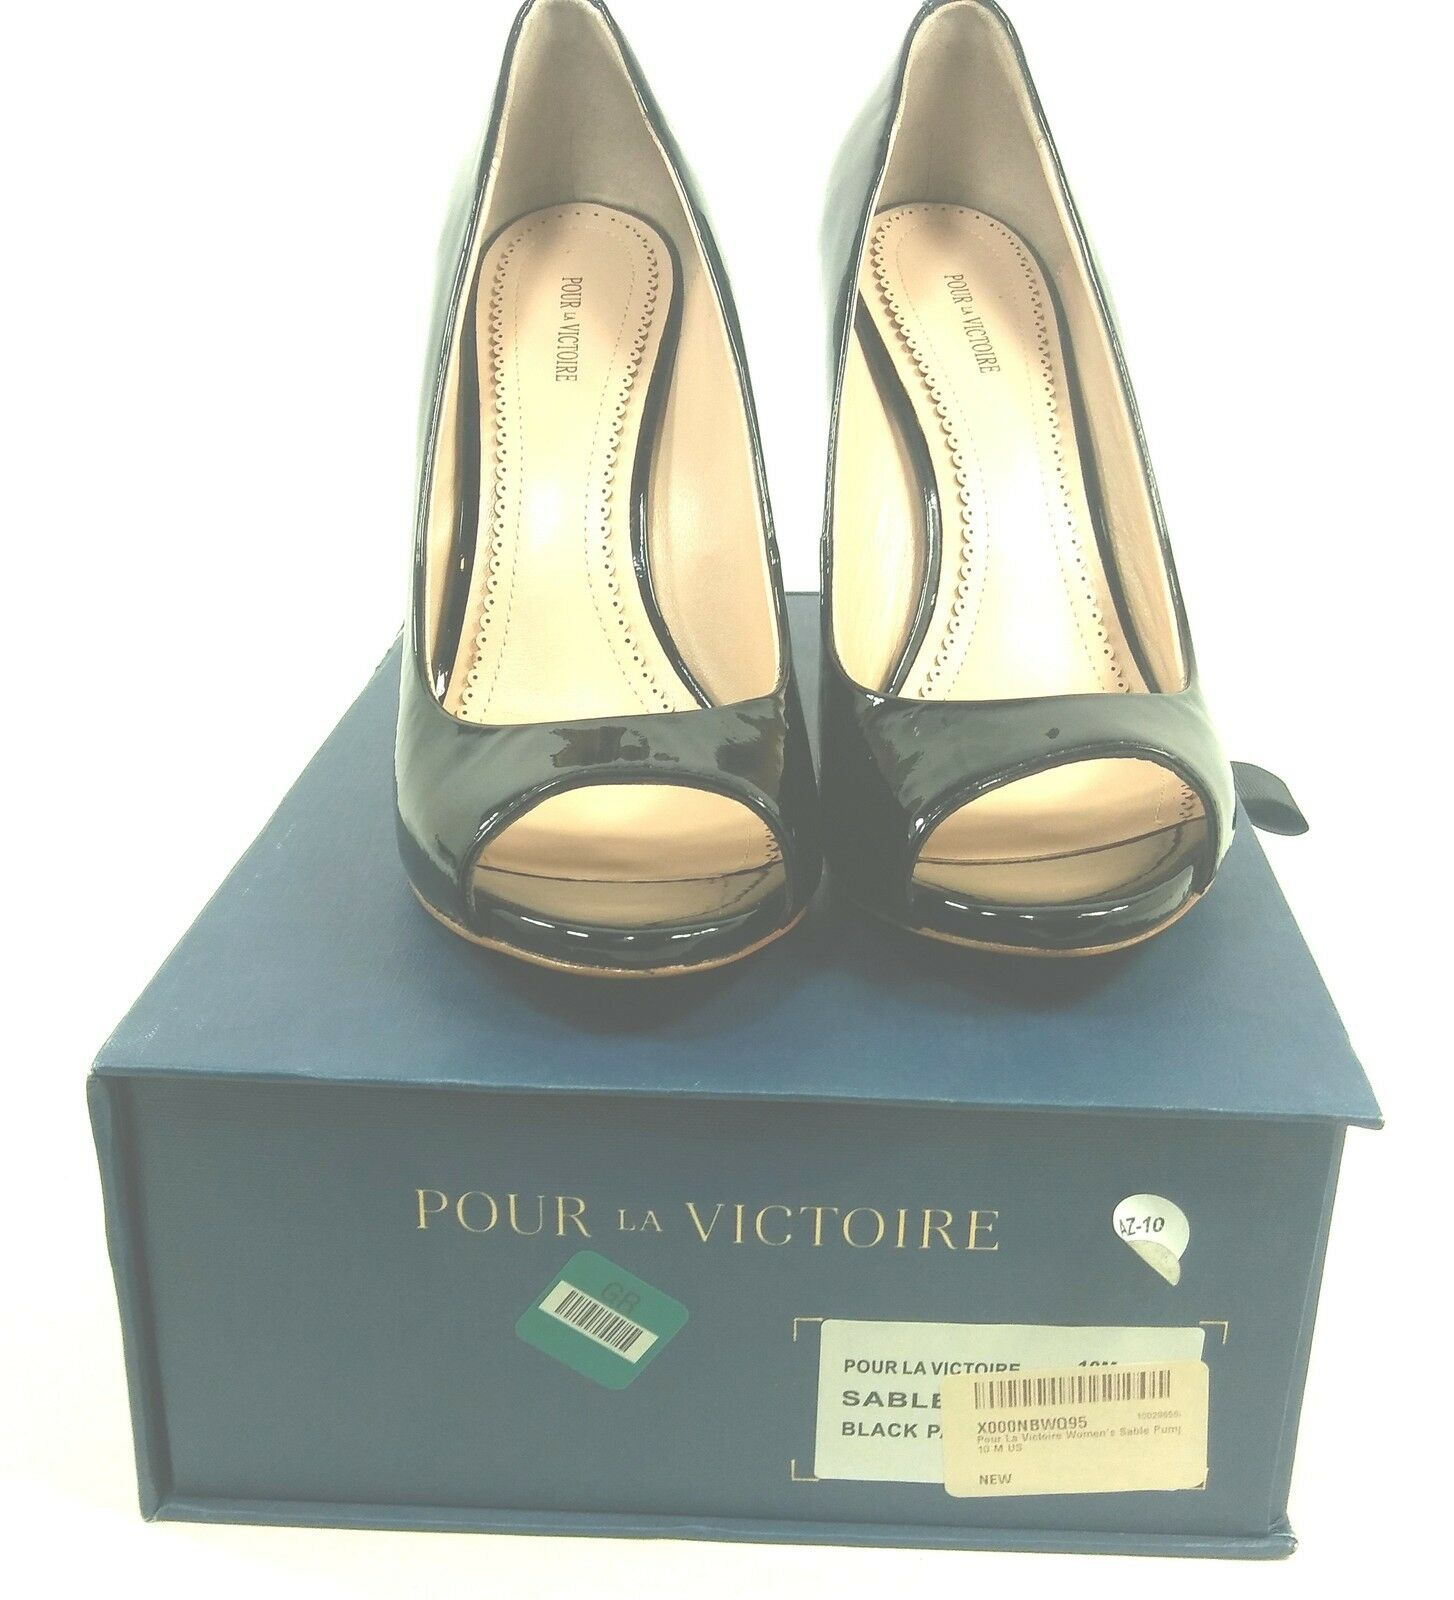 POUR LA VICTOIRE, SABLE PUMP, damen, schwarz, US Größe 10 10 10 M, EUR 40, NEW IN BOX 2fa4c6